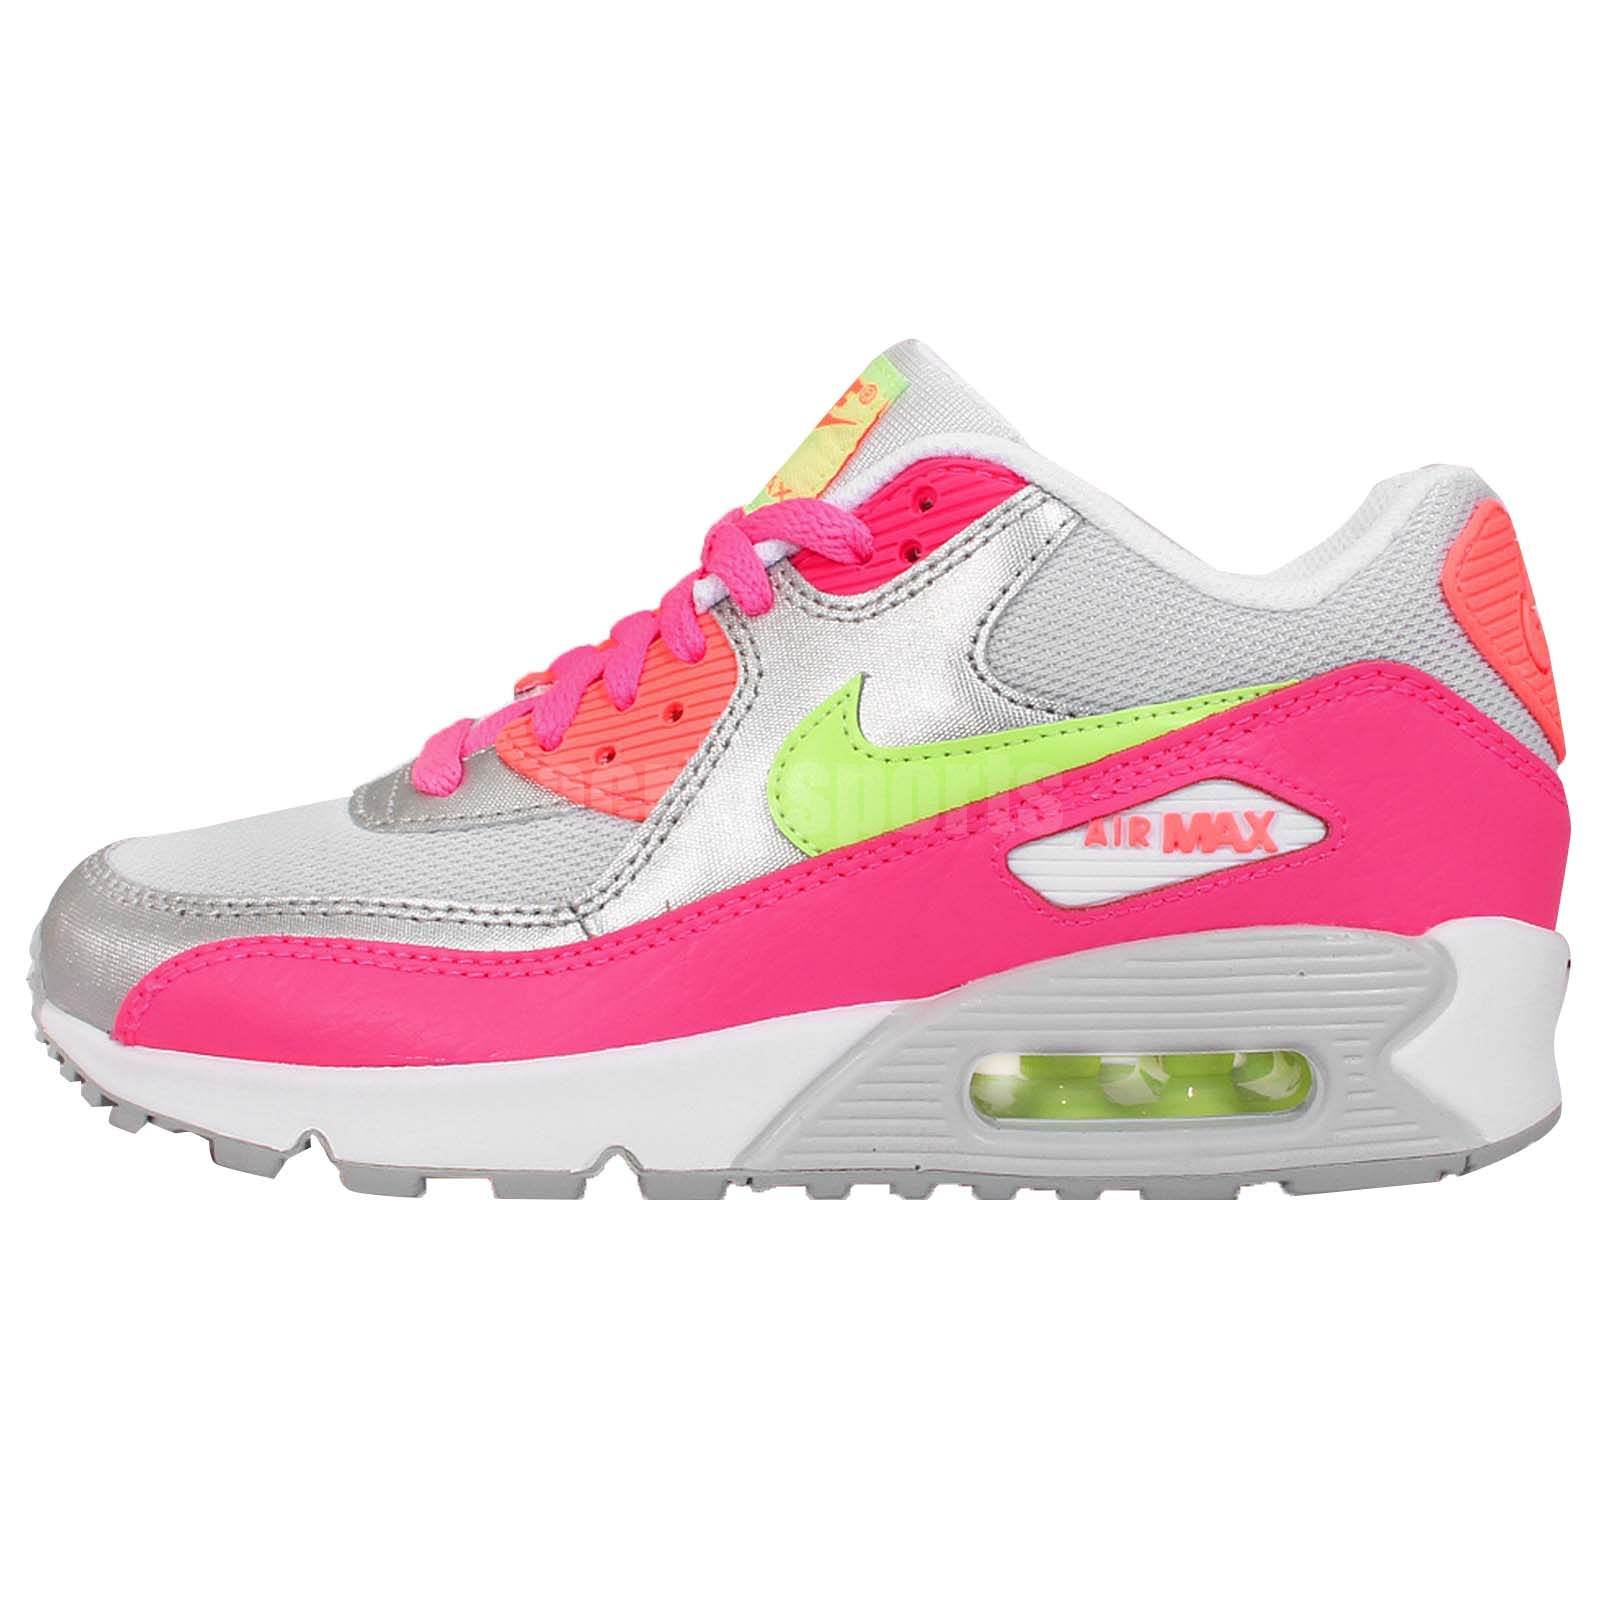 nike air max 90 mesh gs grey silver pink lime girls youth. Black Bedroom Furniture Sets. Home Design Ideas